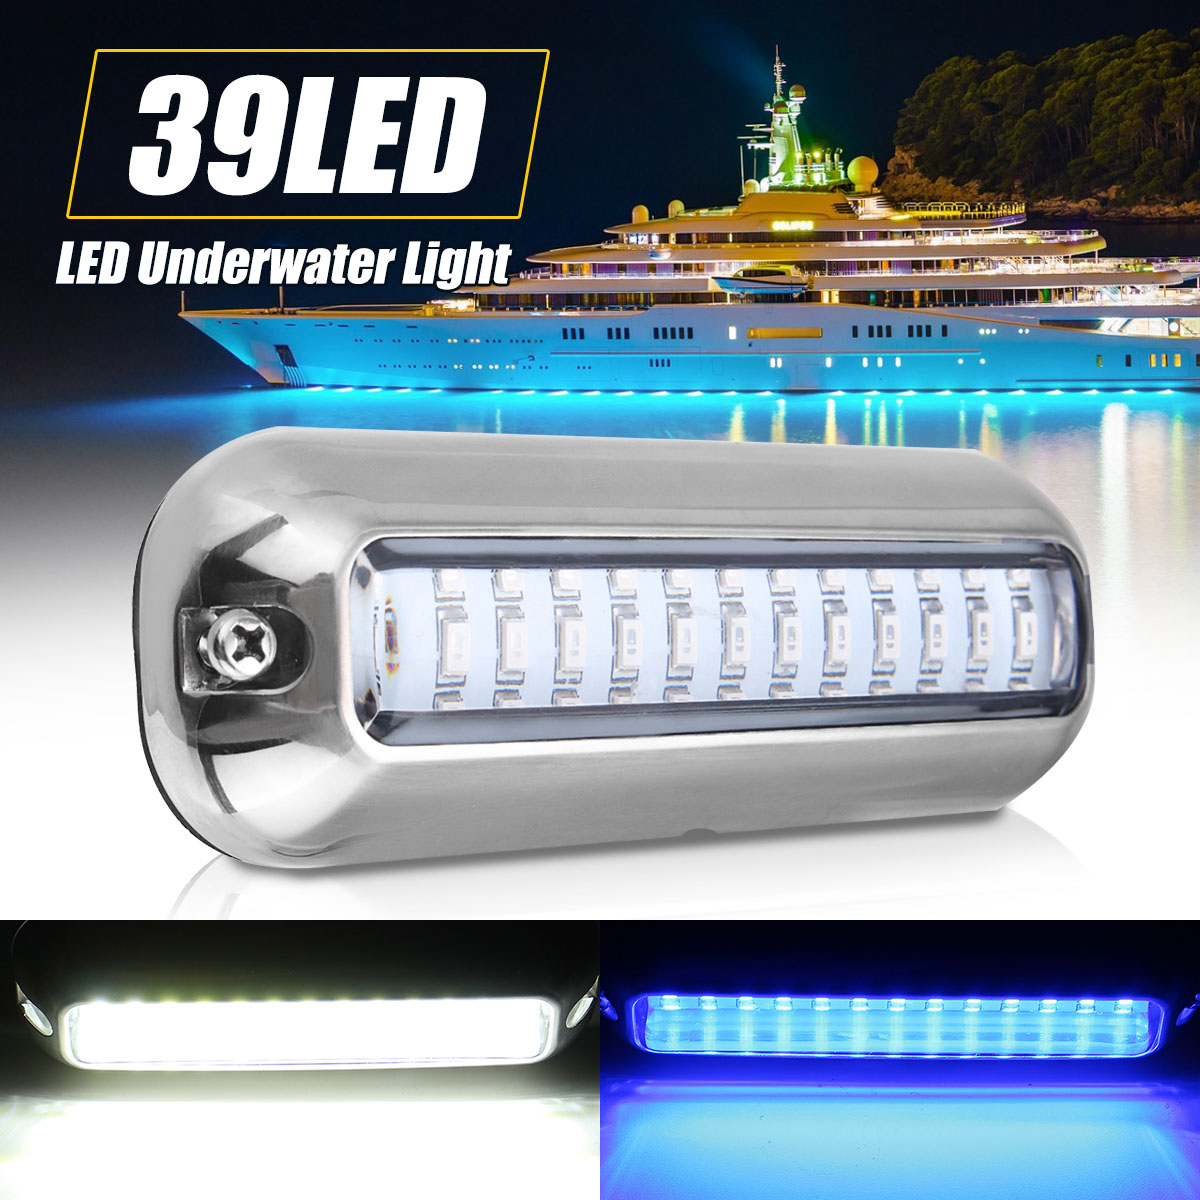 Automobiles & Motorcycles Reasonable 50w 27led Red/blue/green Boat Light Underwater Pontoon Marine Transom Light Ip68 Waterproof Stainless Steel Anchor Stern Lamp Boat Parts & Accessories